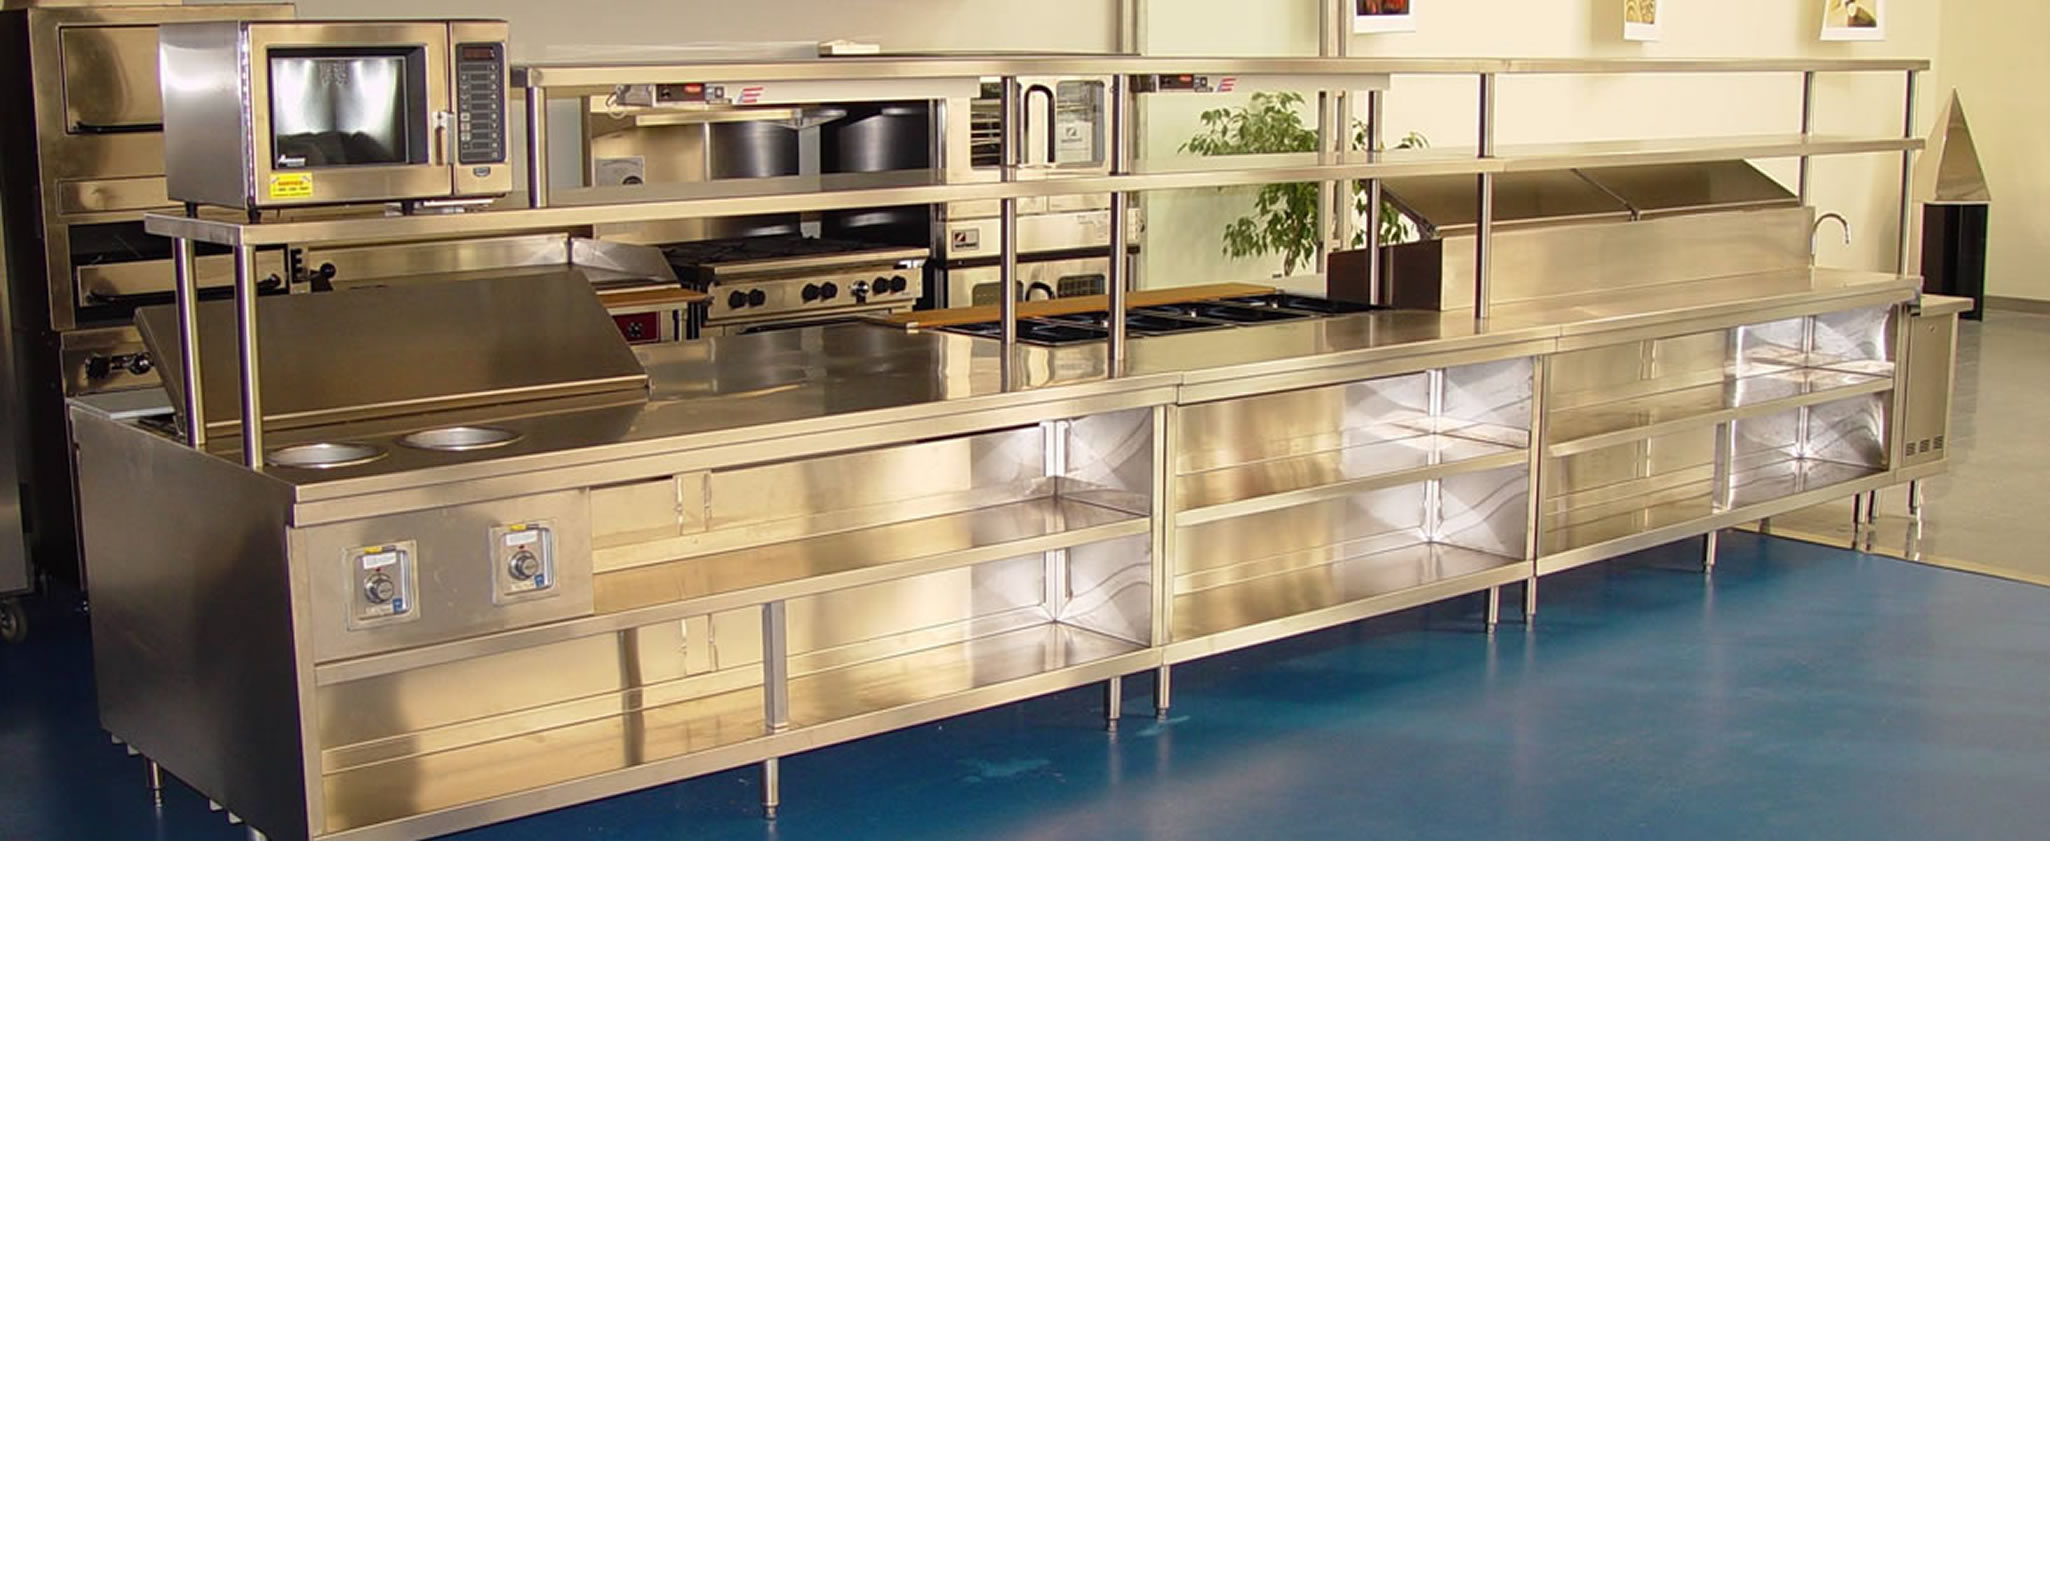 ASI EquipmentQuality Kitchen and Bar Equipment Commercial Quality Made in the U.S.A. Shop now!